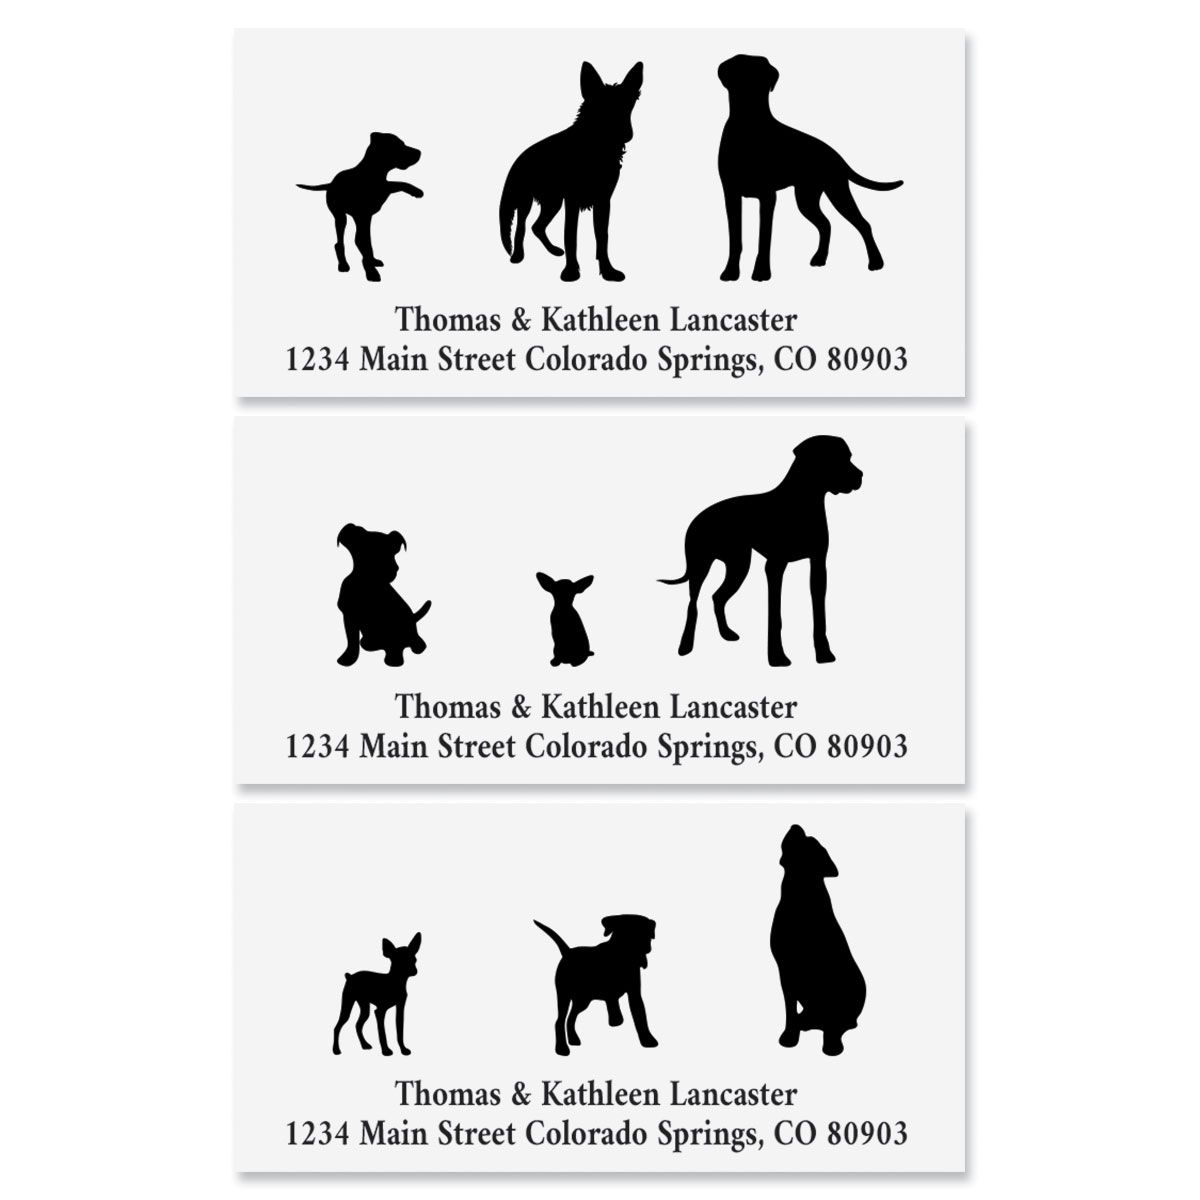 Dog Buddies Deluxe Address Labels Personalized address labels are also a quick and easy way to label your books, CDs, DVDs and other belongings to avoid mix-ups. The set includes 144 personalized self-stick address labels, each measuring 1-1/8  x 2-1/4 . We'll print your labels with the name and address, message, or information you choose. Specify block or script and 1st line of personalization, up to 35 characters and 2nd line of personalization up to 50 characters.